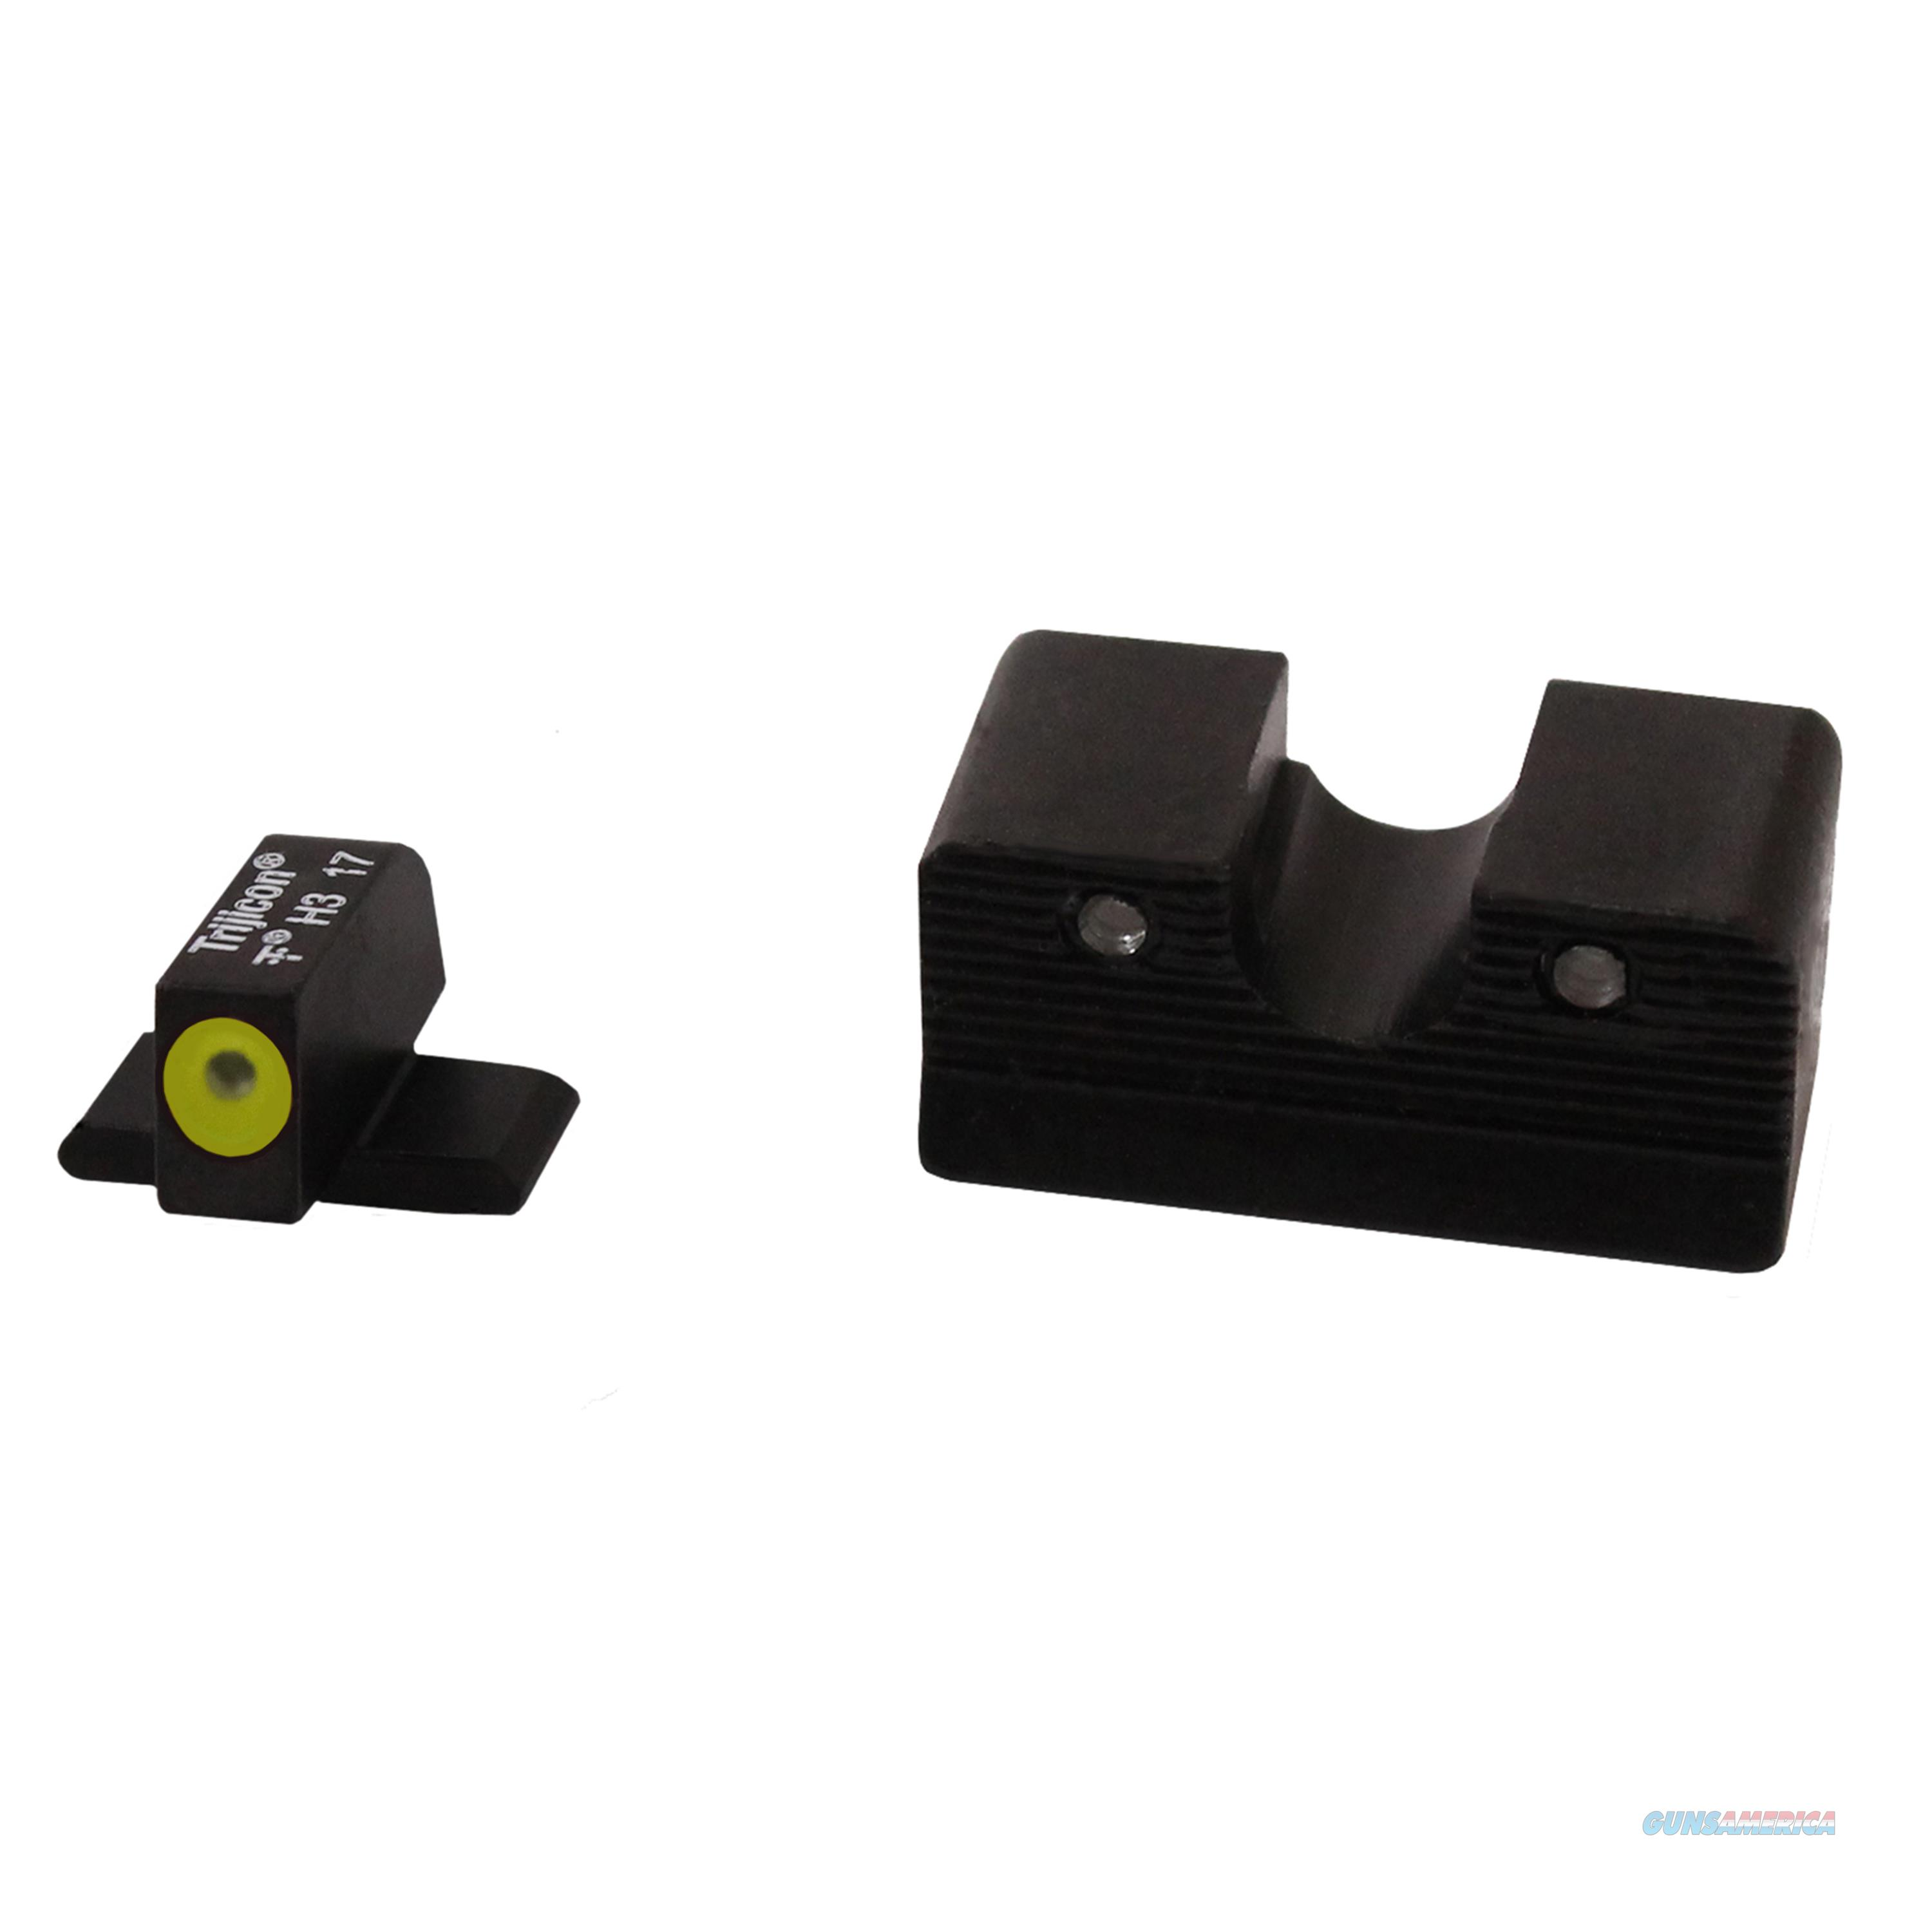 Trijicon Night Sight Set Hd Xr Yellow Outline Fn 509 FN604C600999  Non-Guns > Iron/Metal/Peep Sights